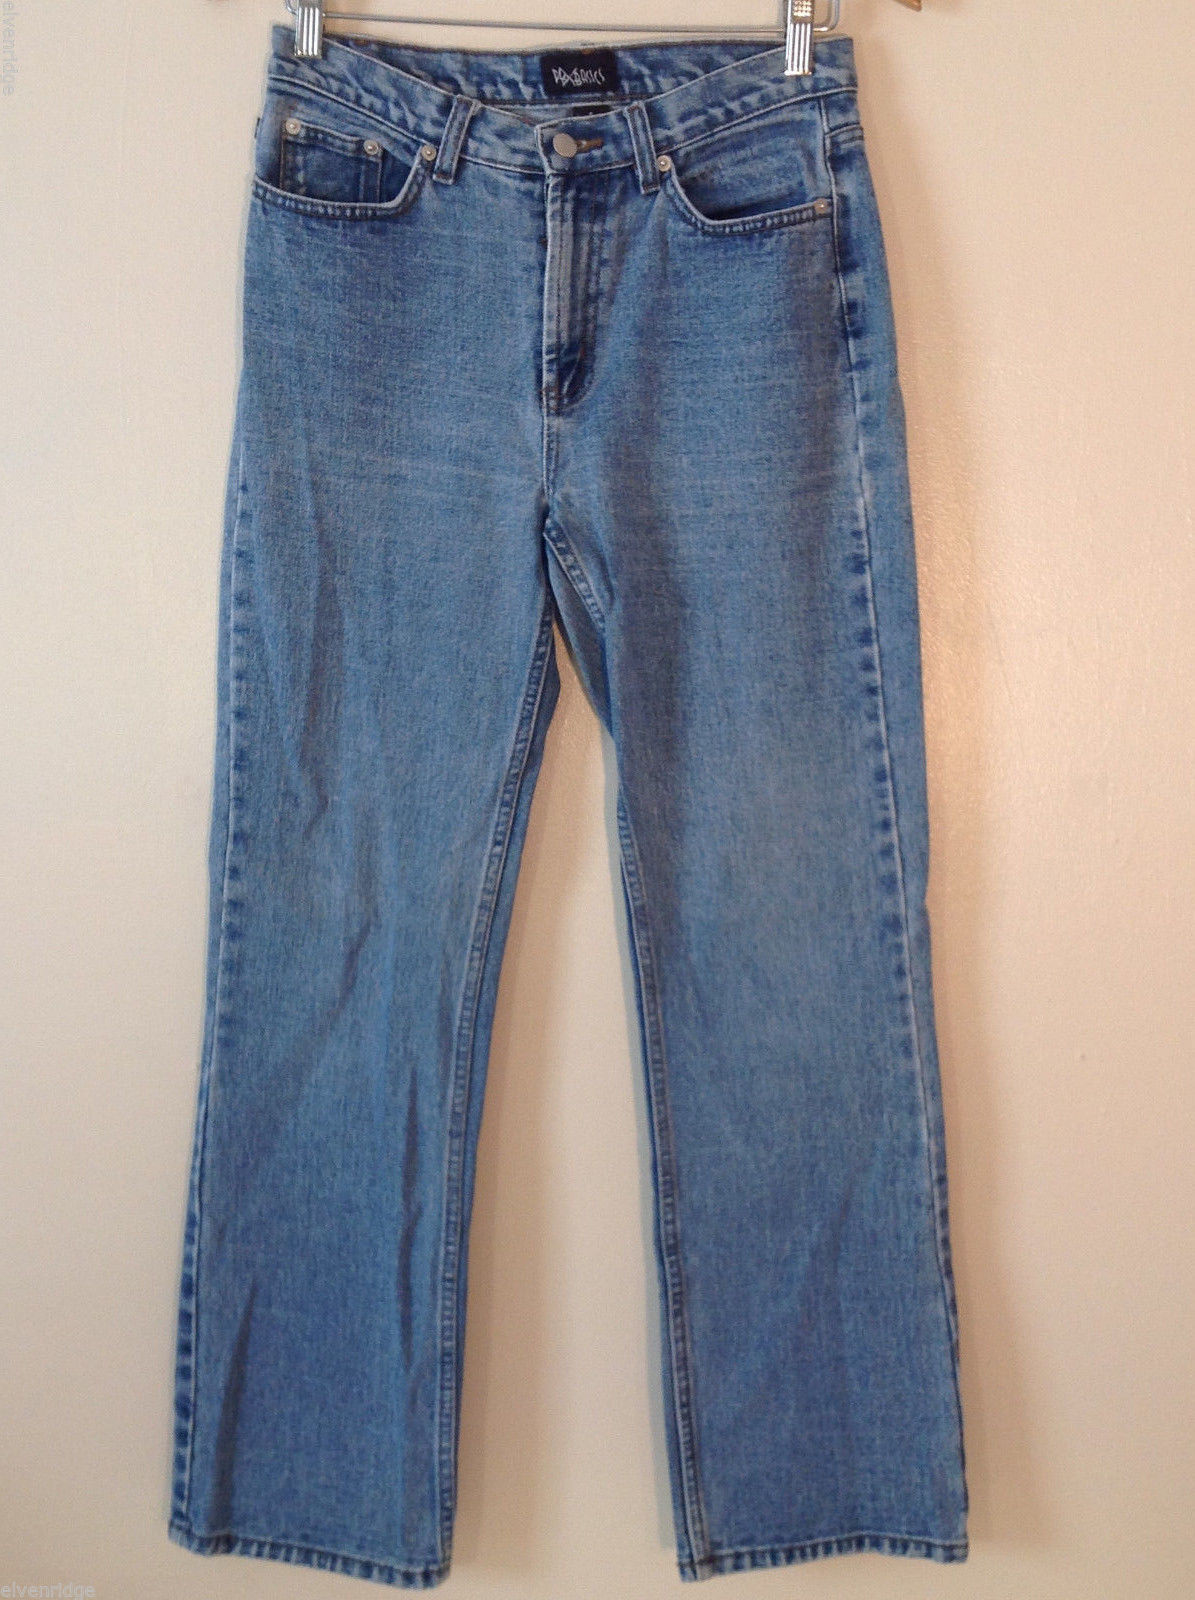 PBX Basics Women's Size 8 Denim Jeans Light Blue Wash Straight Leg High Waist